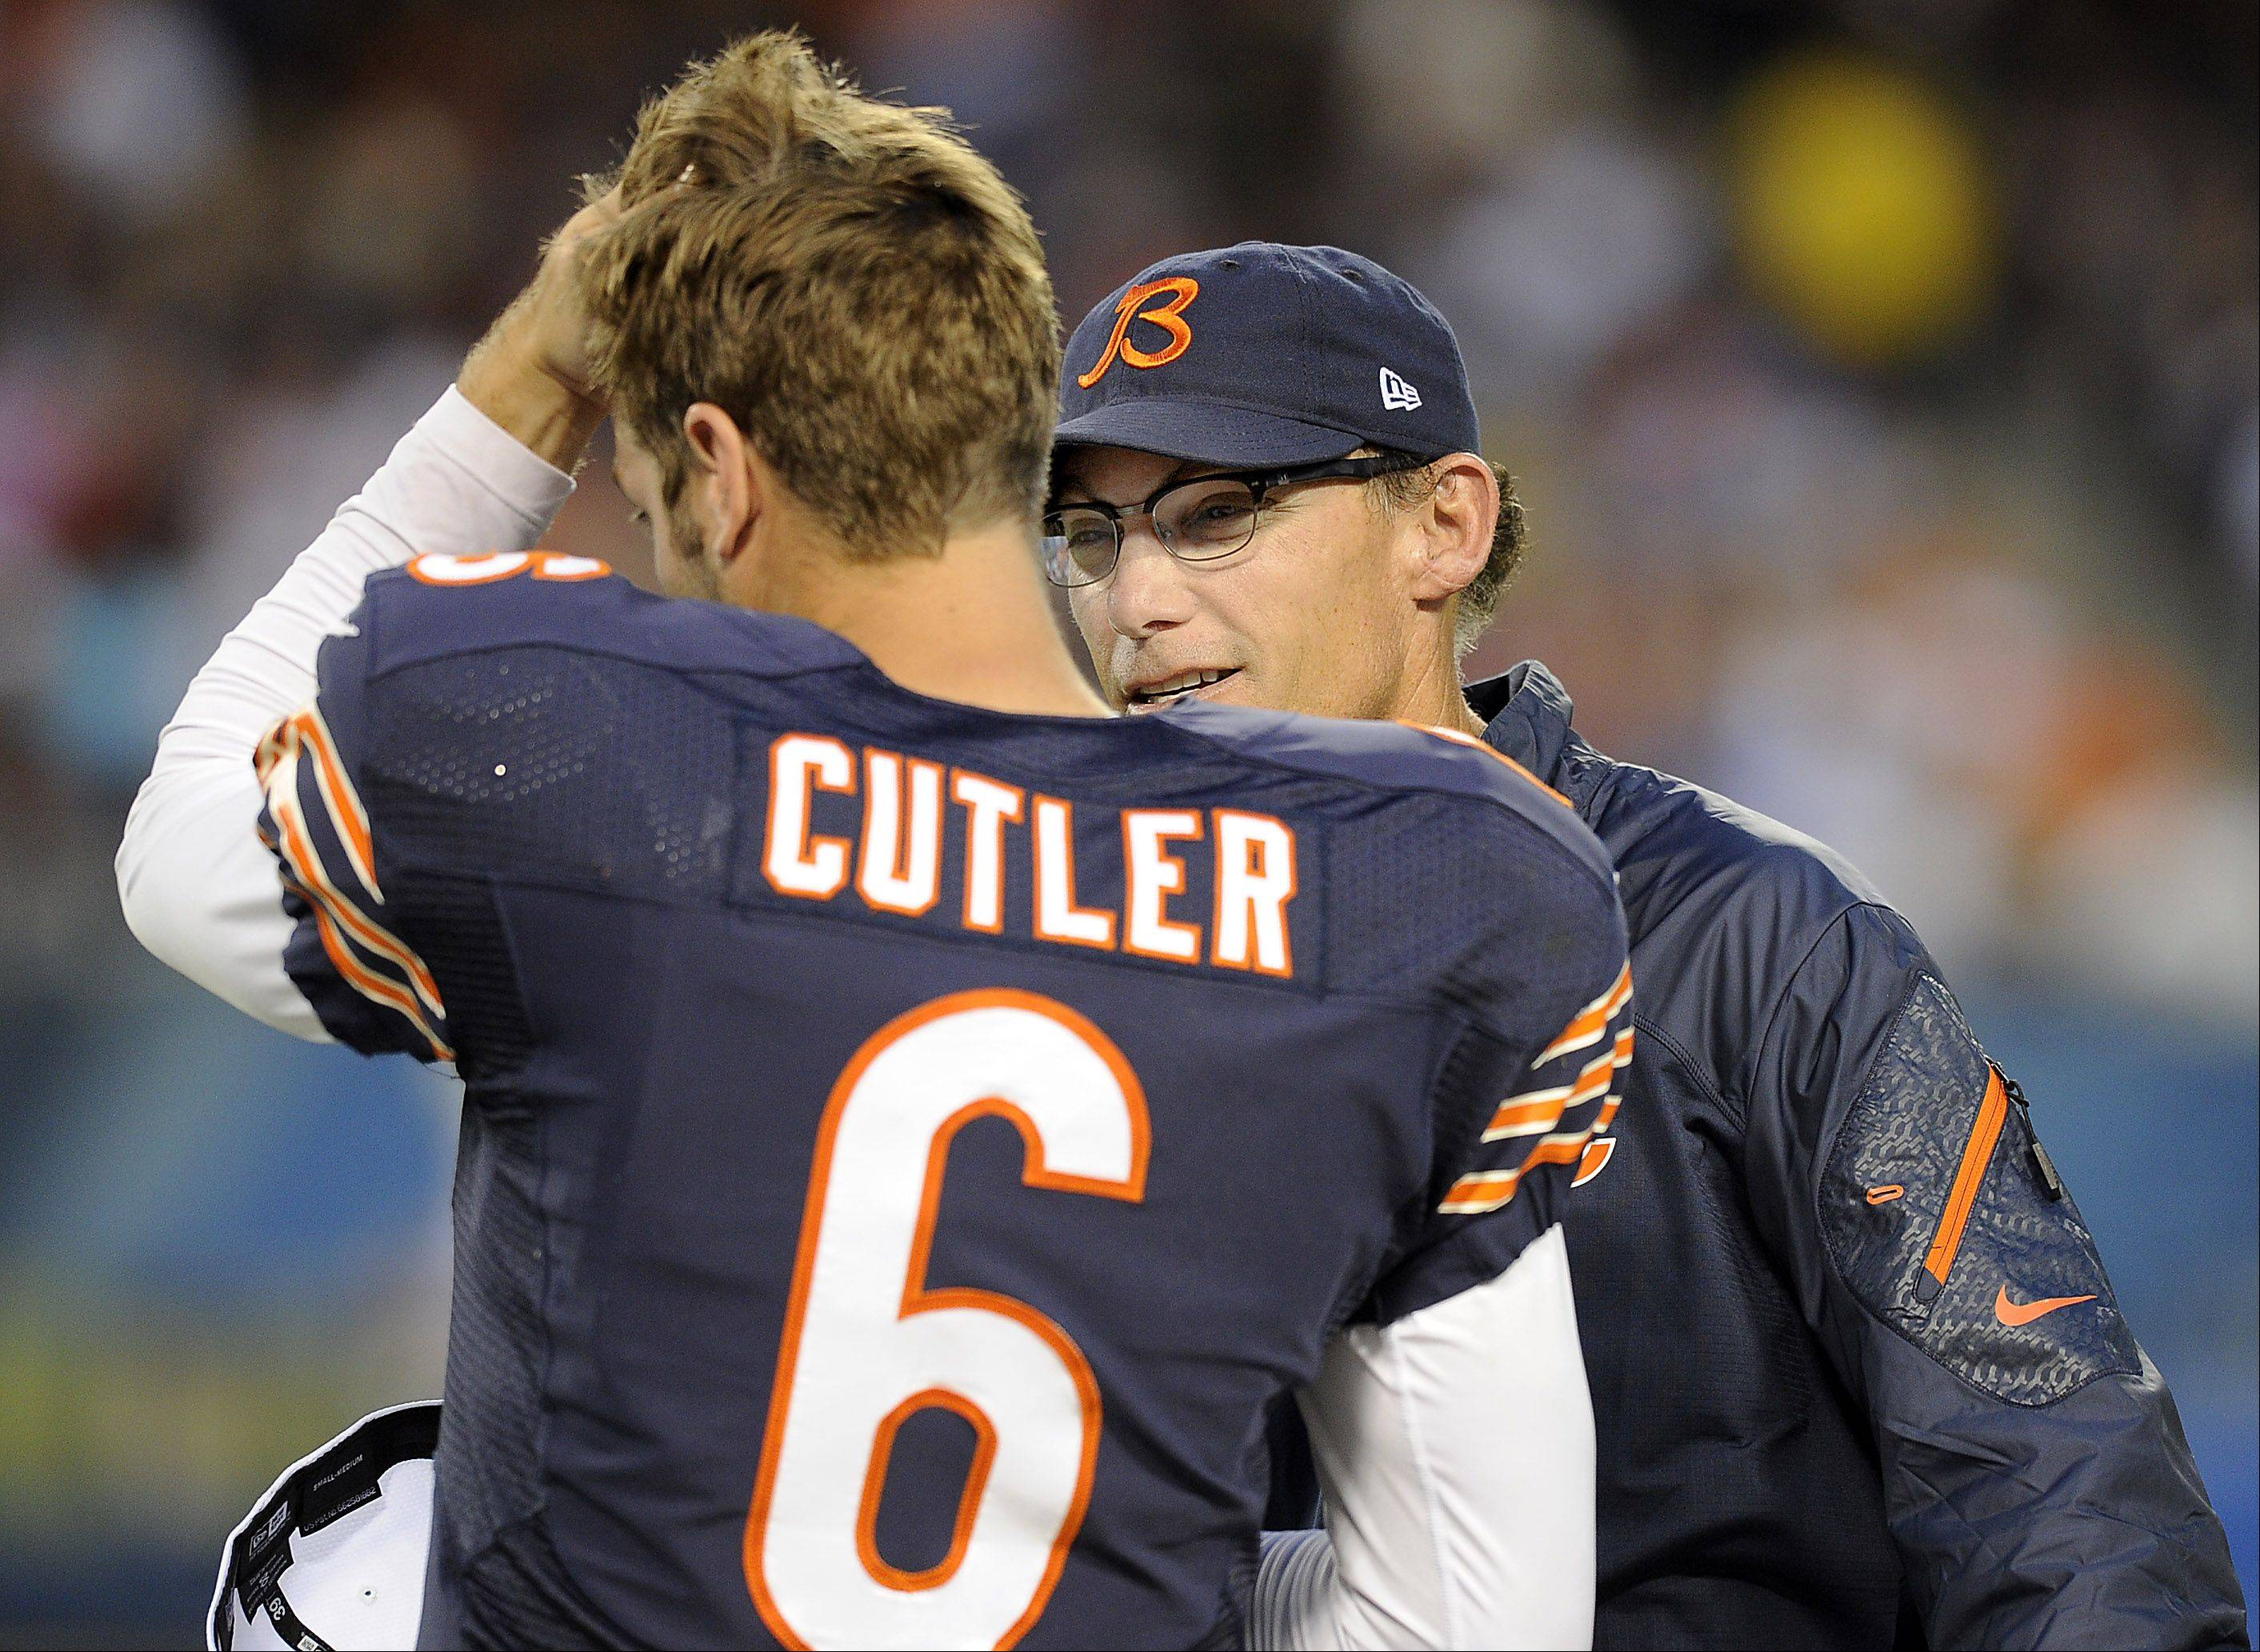 Gusty Trestman stands by his man -- Cutler